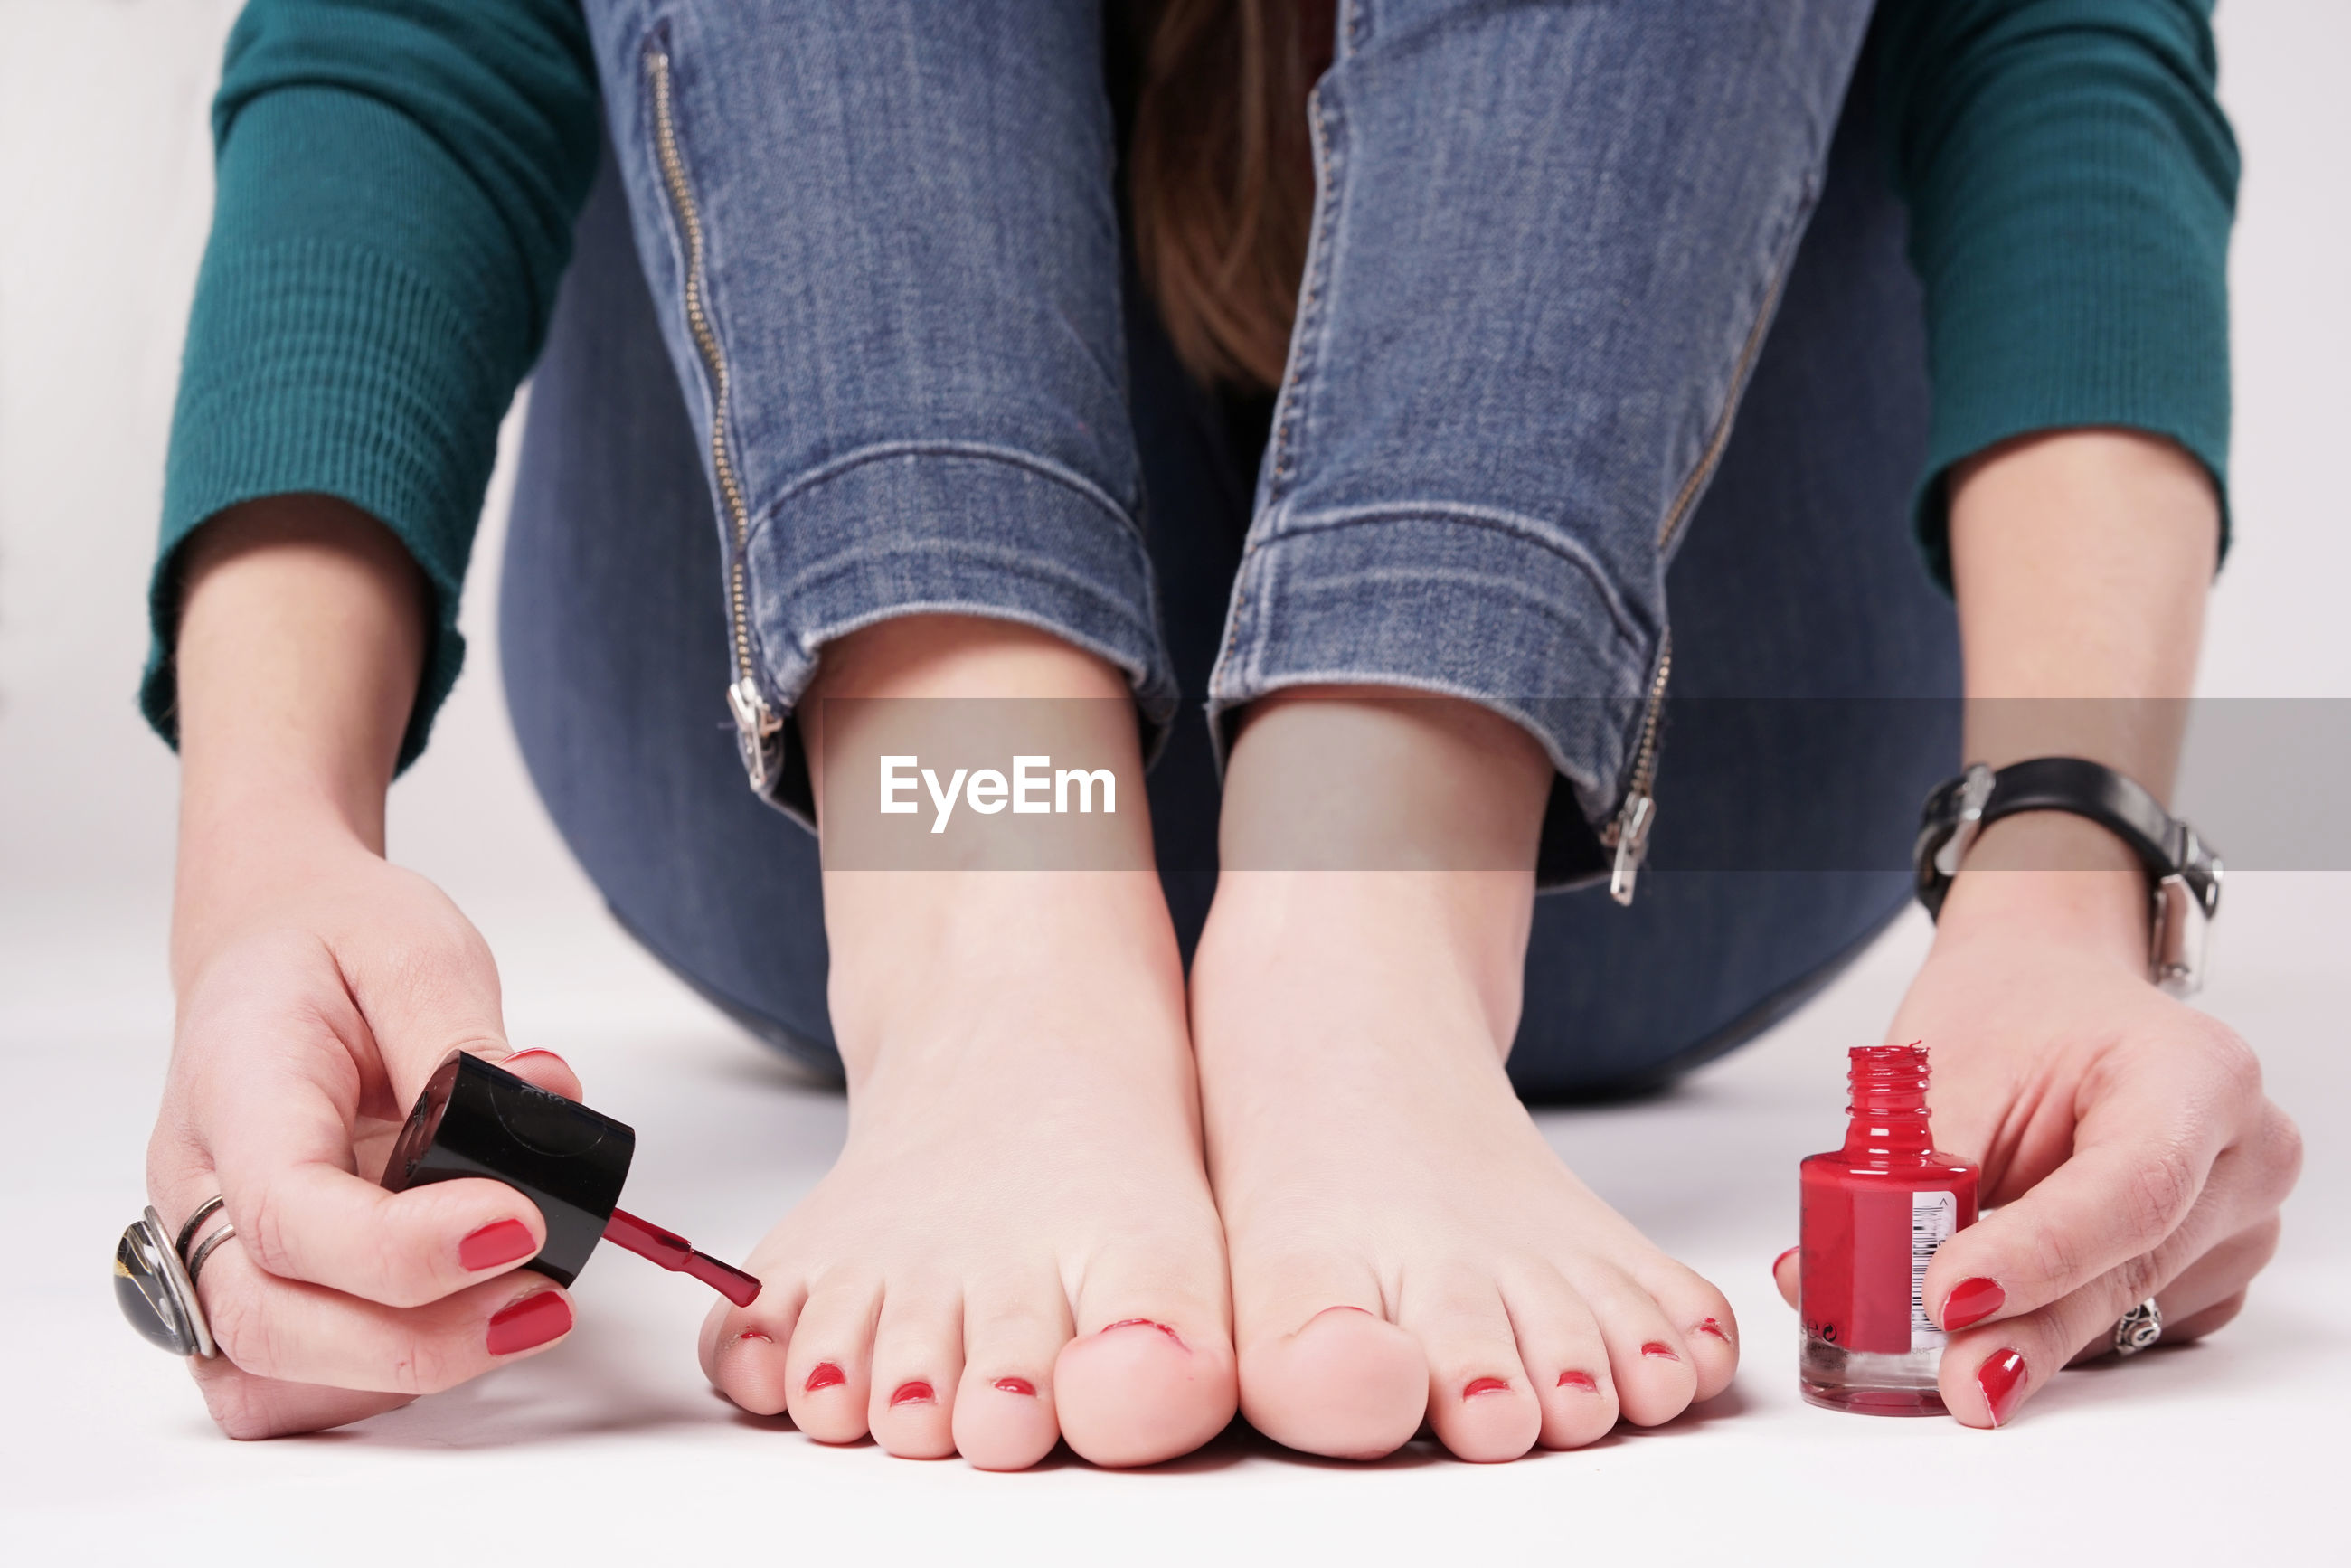 Woman painting her toe nails against white background